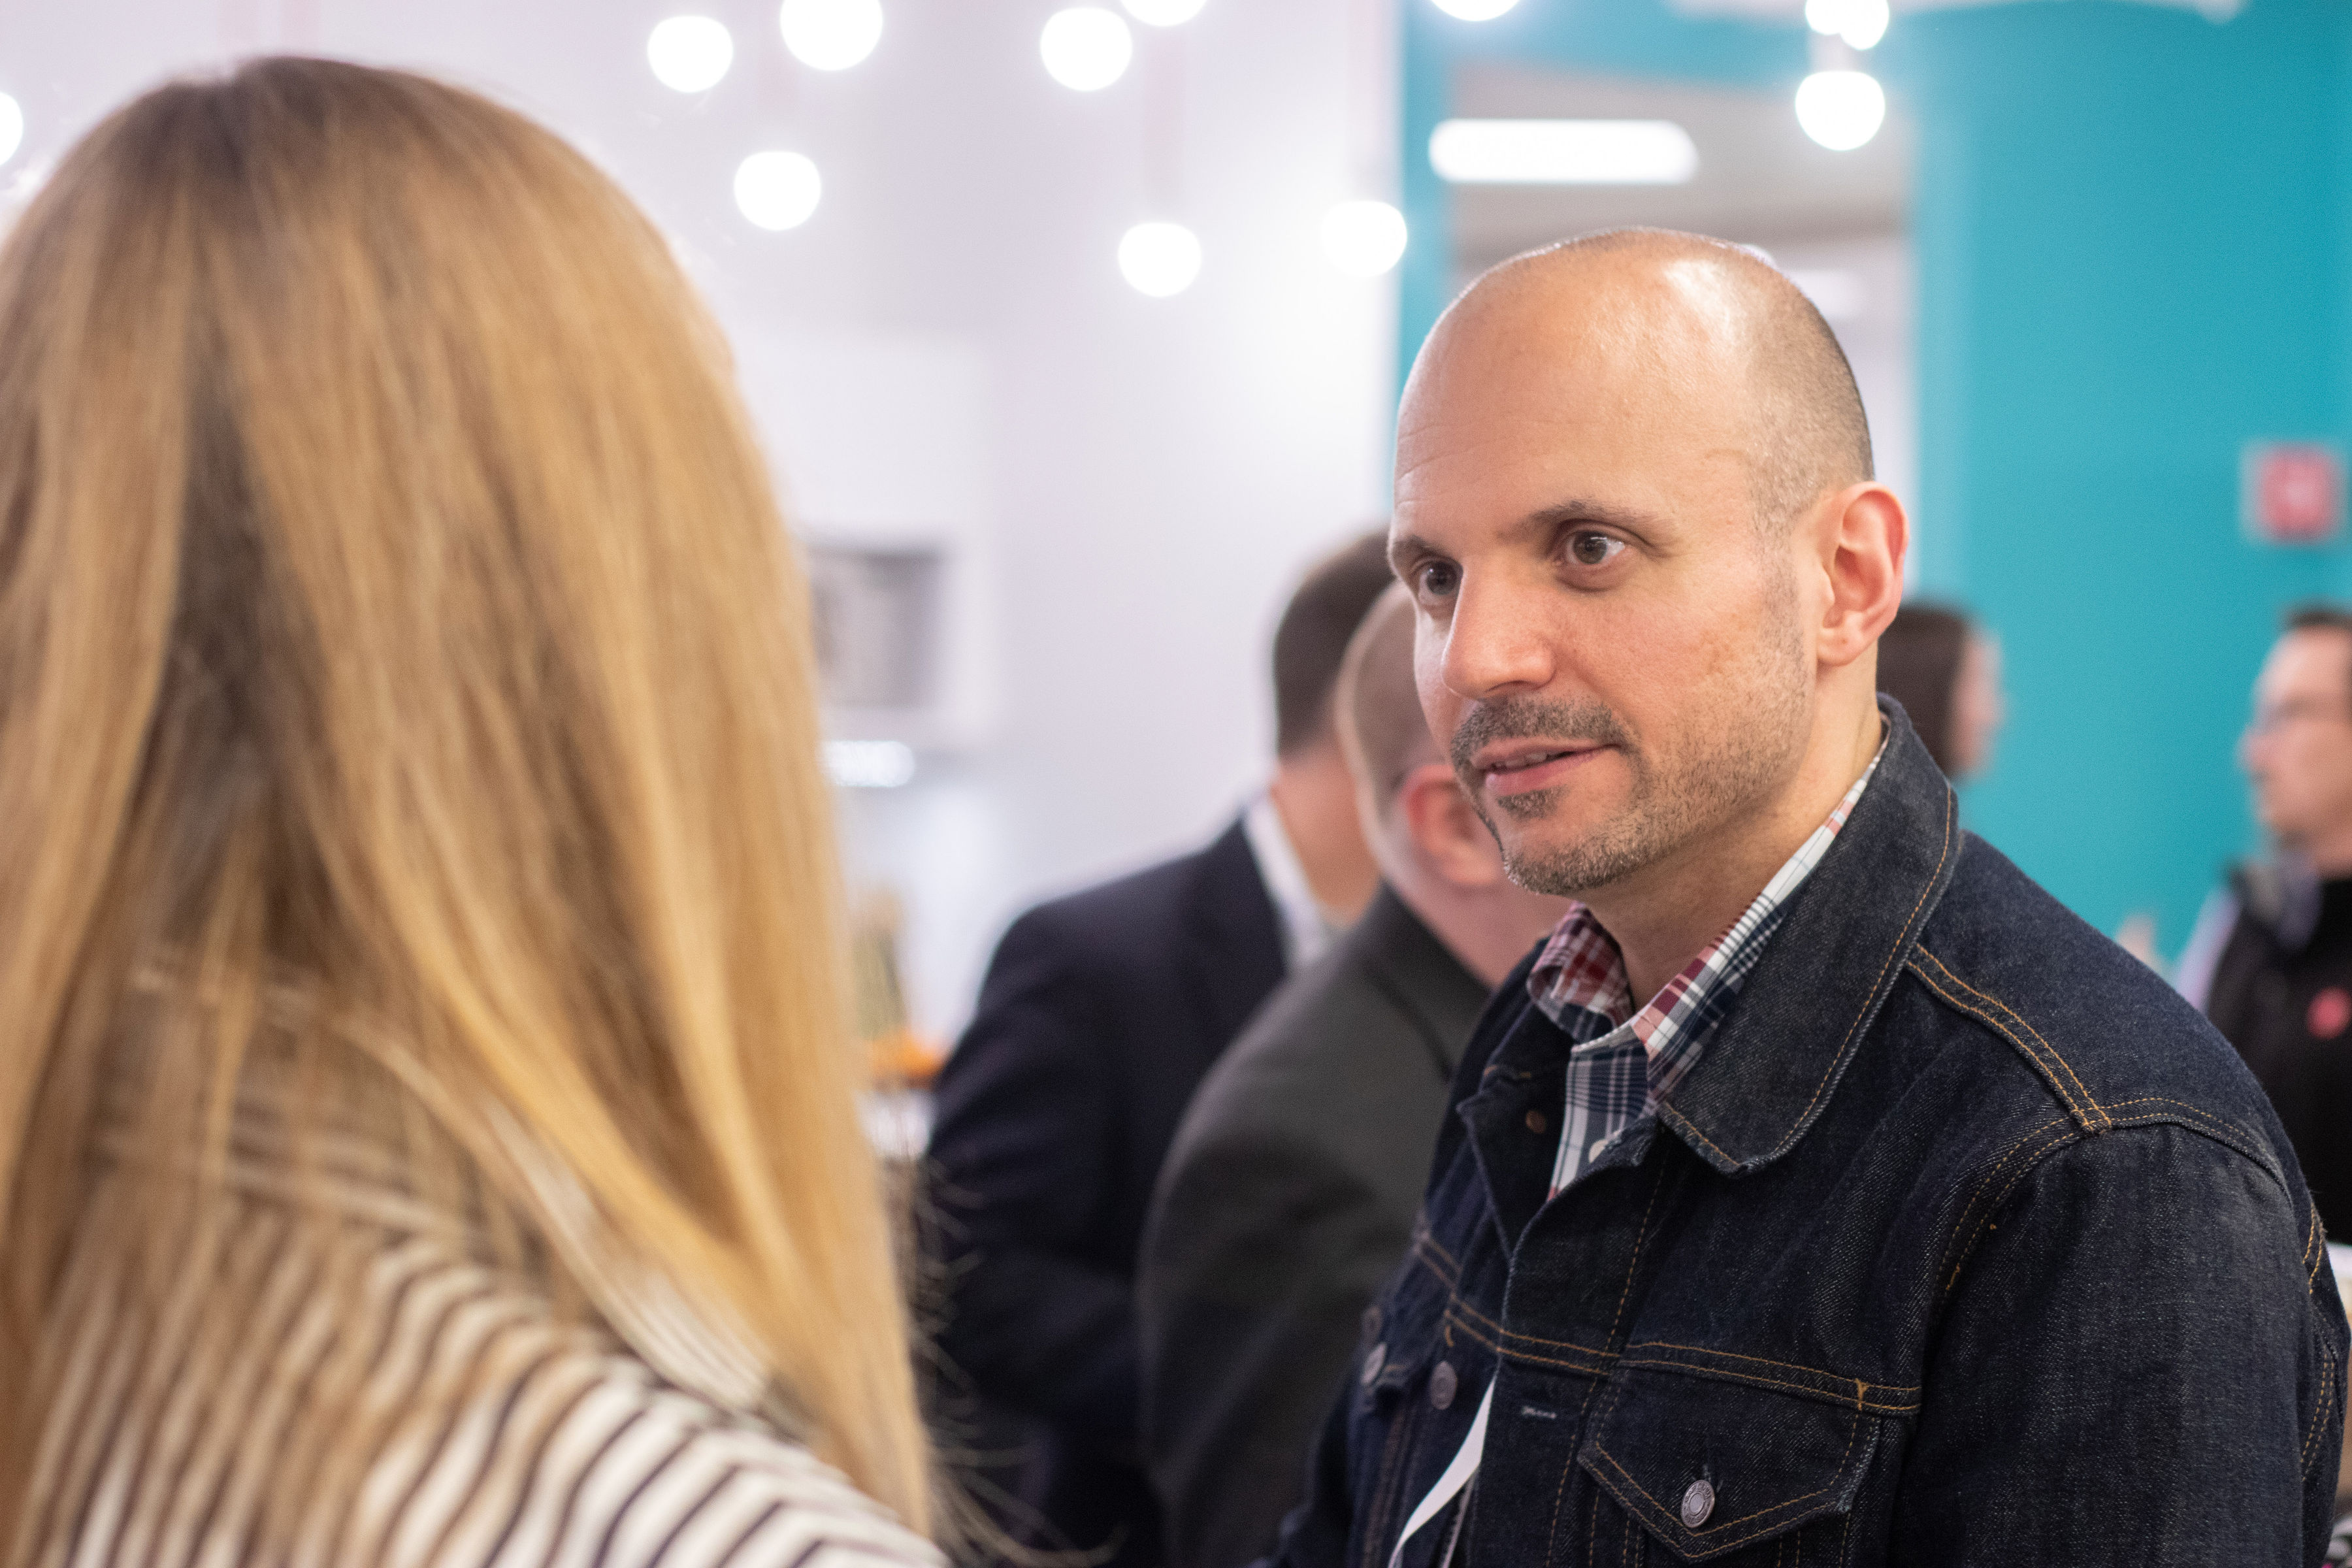 Two diverse employees talk at office event